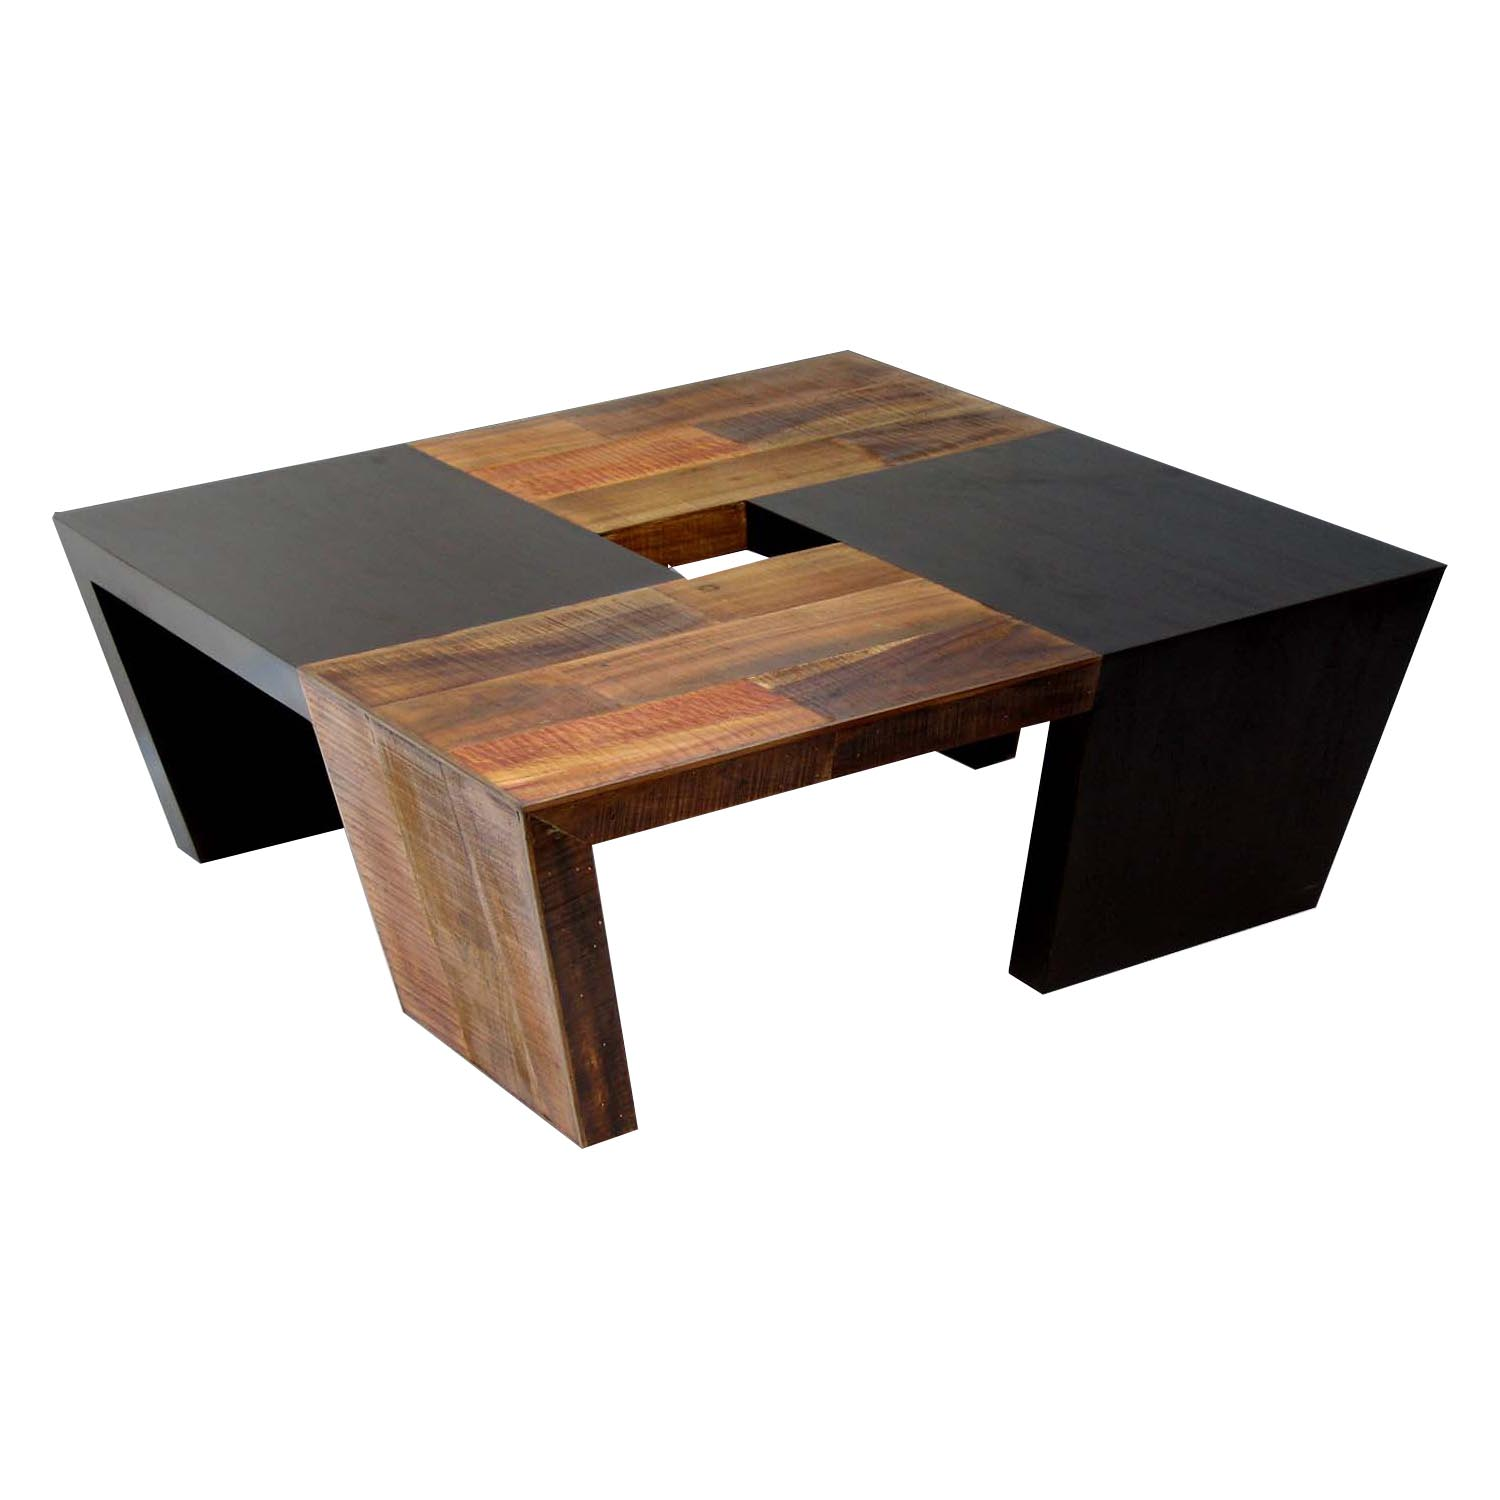 Modern wood coffee table coffee table design ideas Espresso coffee table